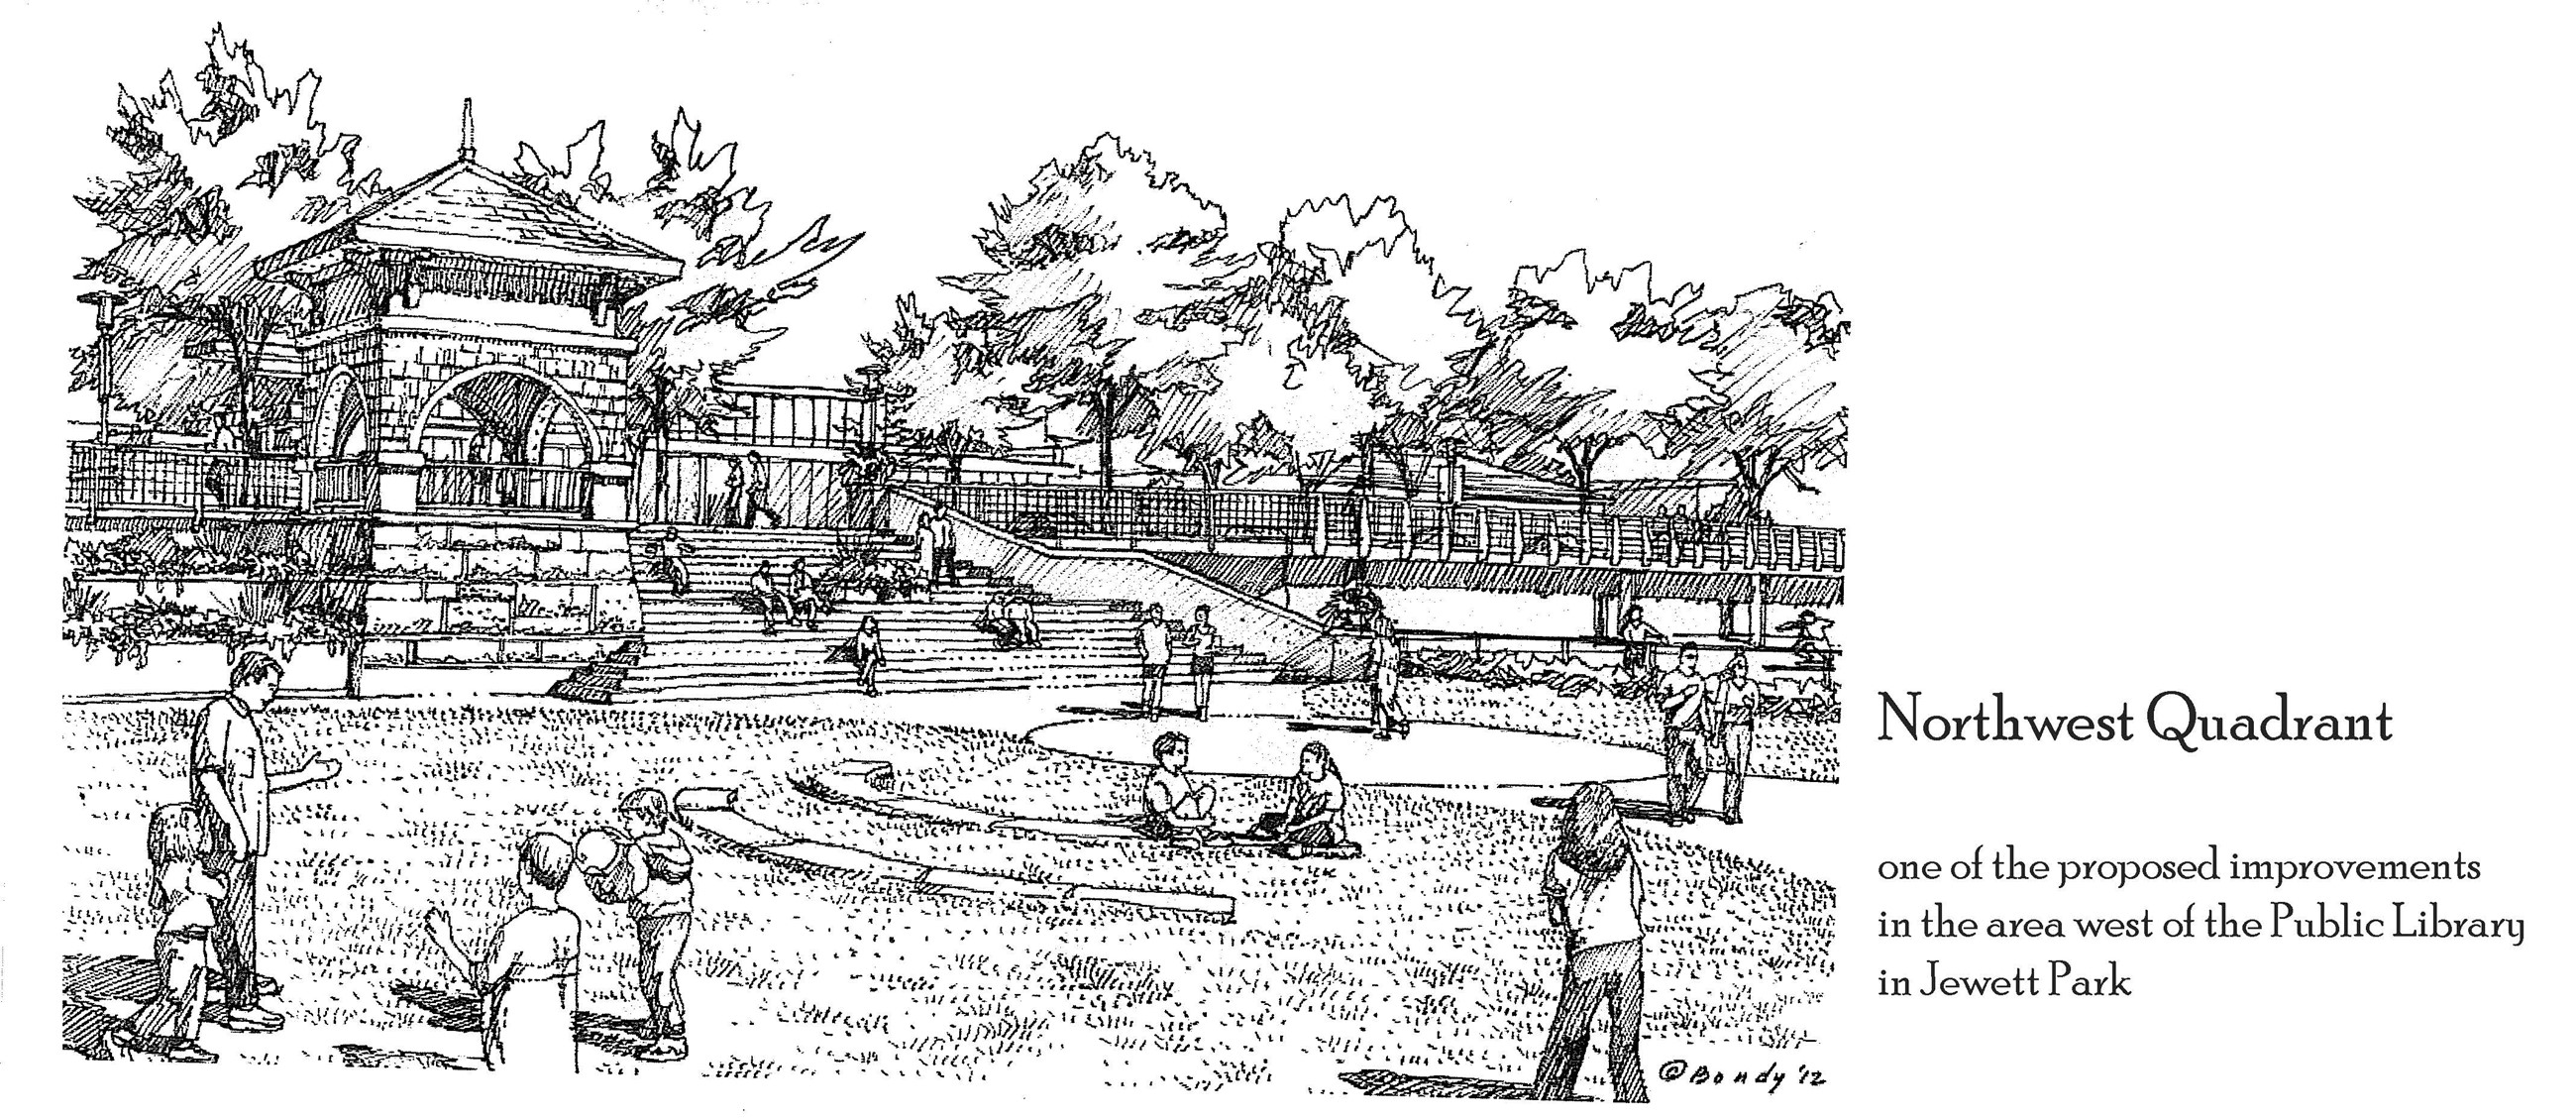 Northwest Quadrant drawing with buildings and people in a park setting